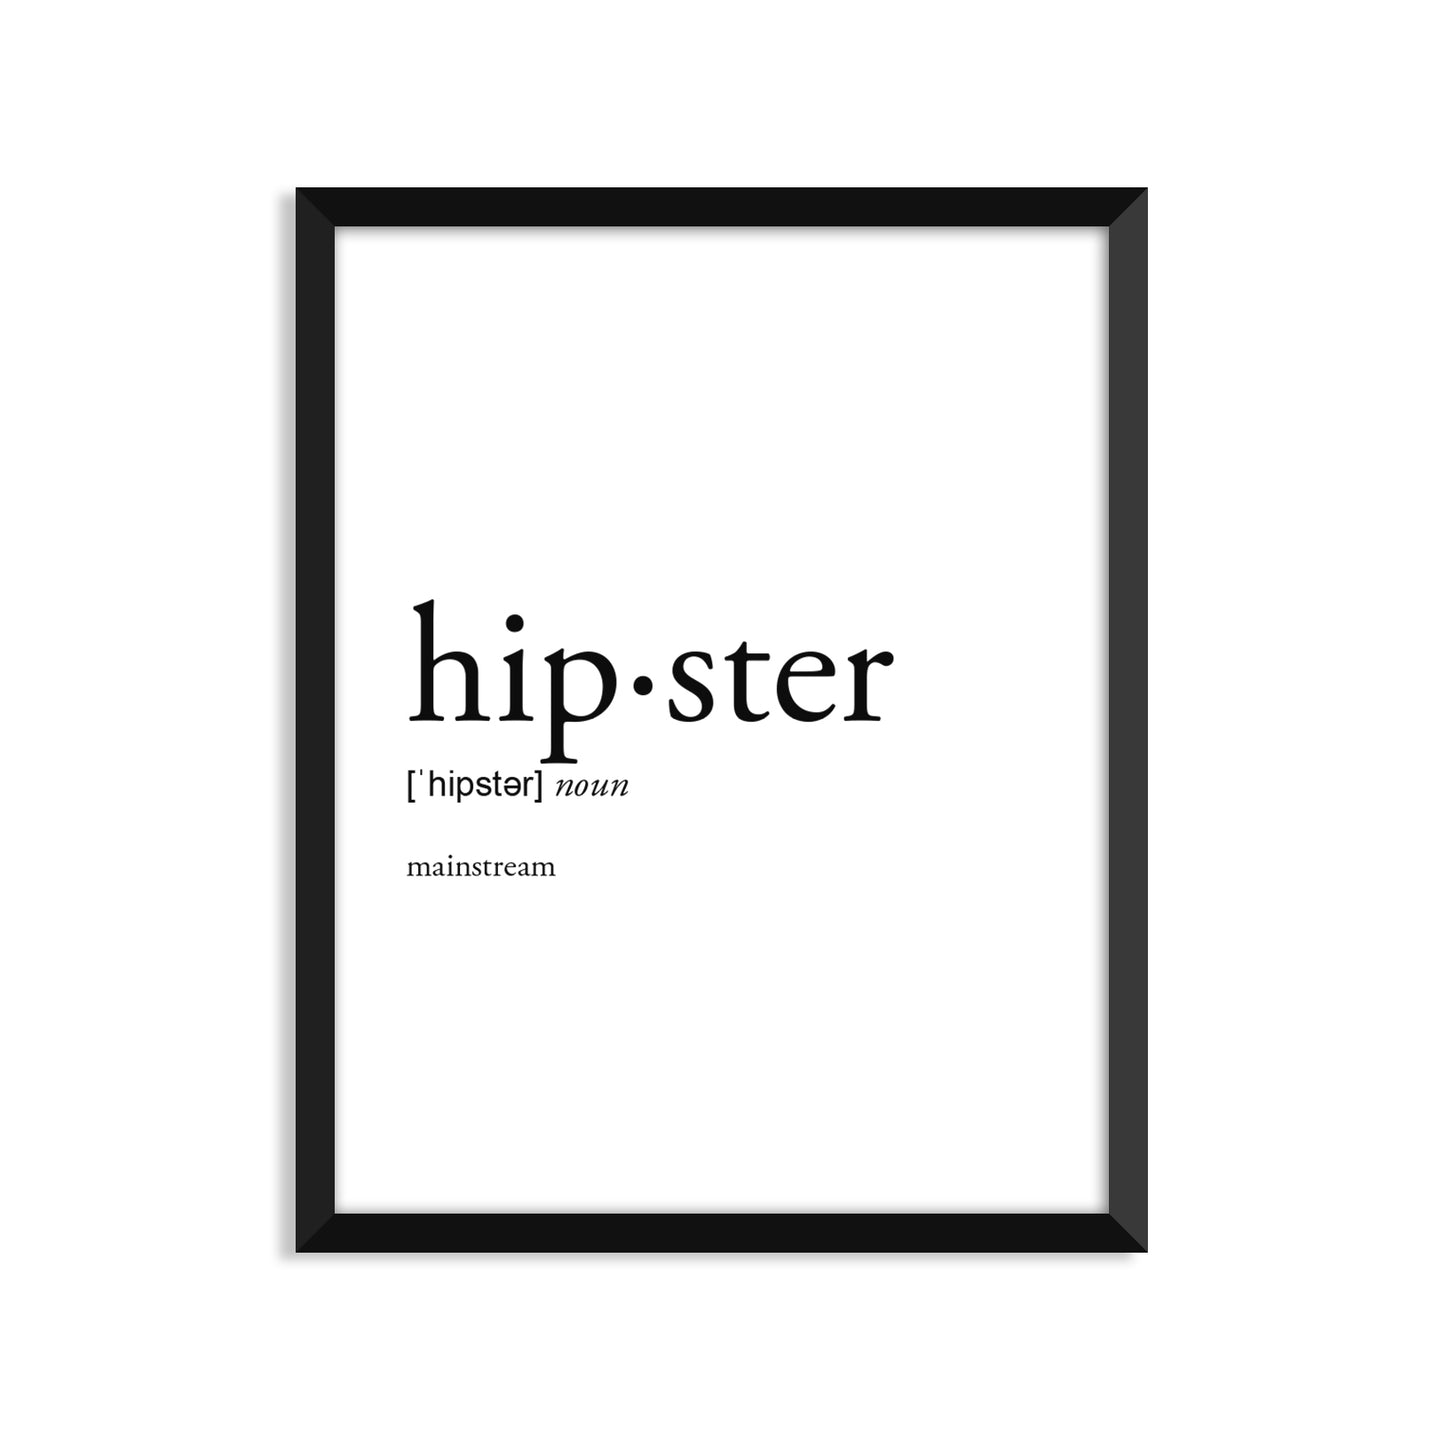 Hipster Definition - Unframed Art Print Or Greeting Card